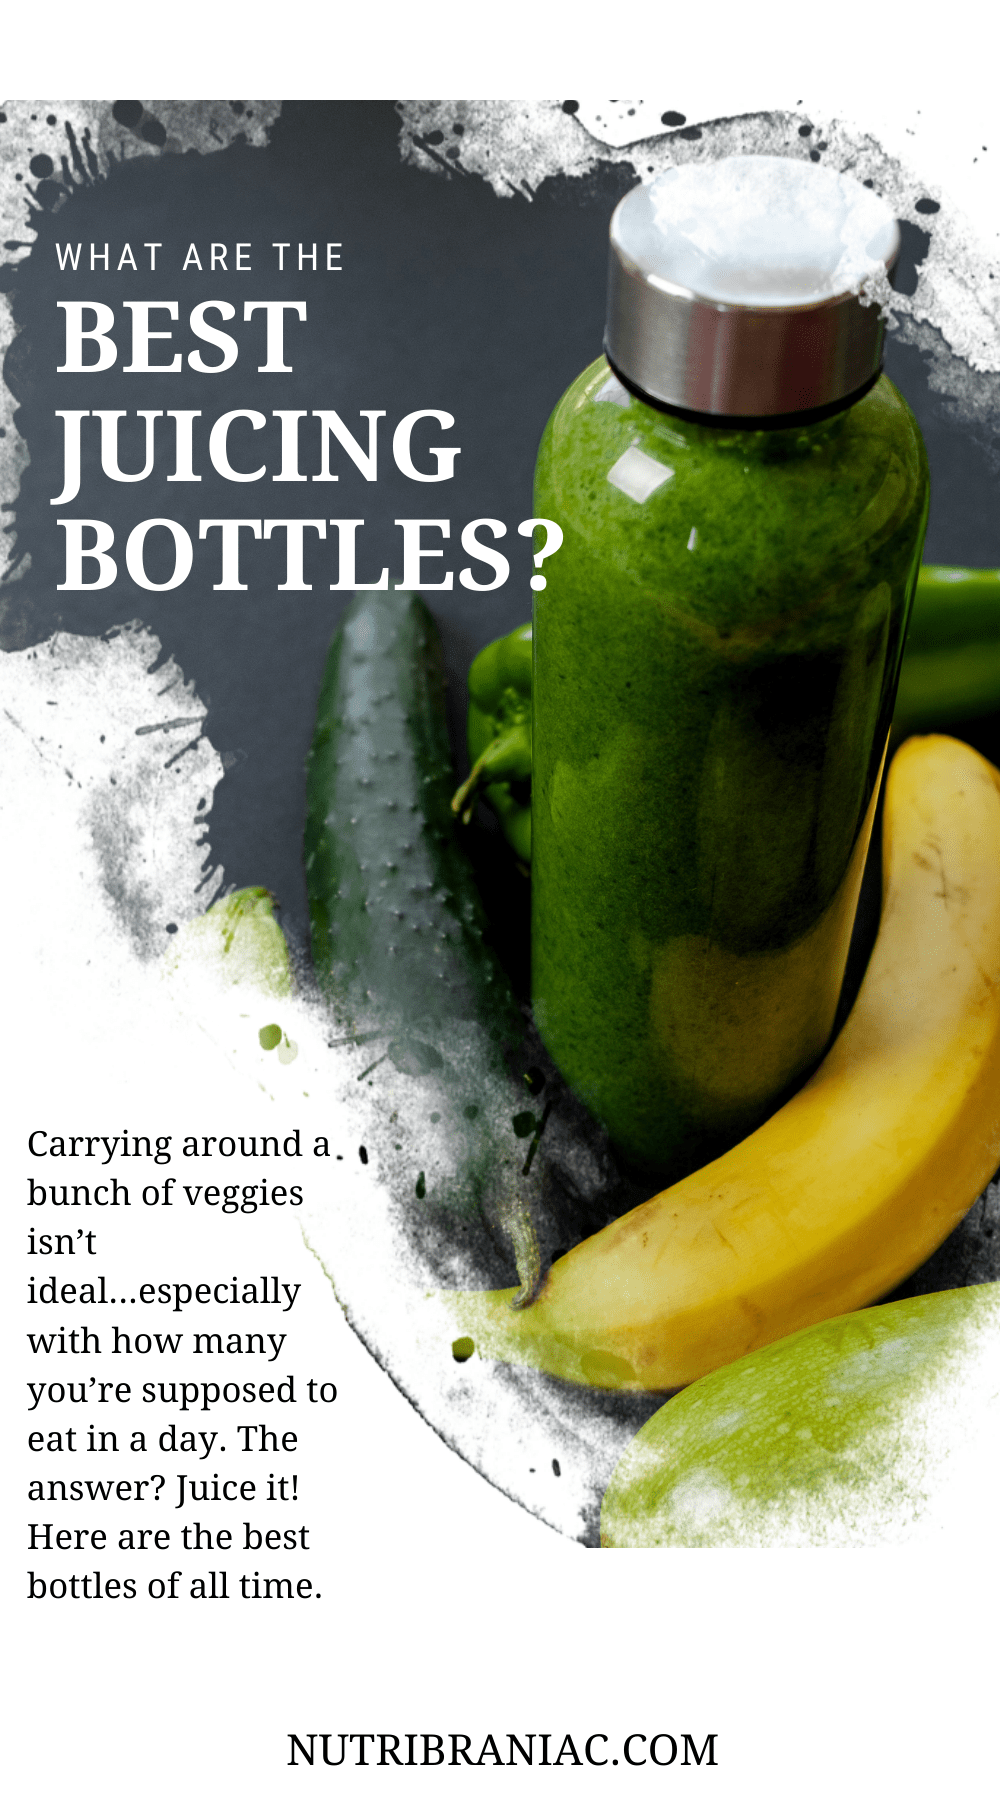 "Graphic image of a glass juice bottle filled with green juice on a marble table next to fruits and vegetables with text overlay ""What are the Best Juicing Bottles"""